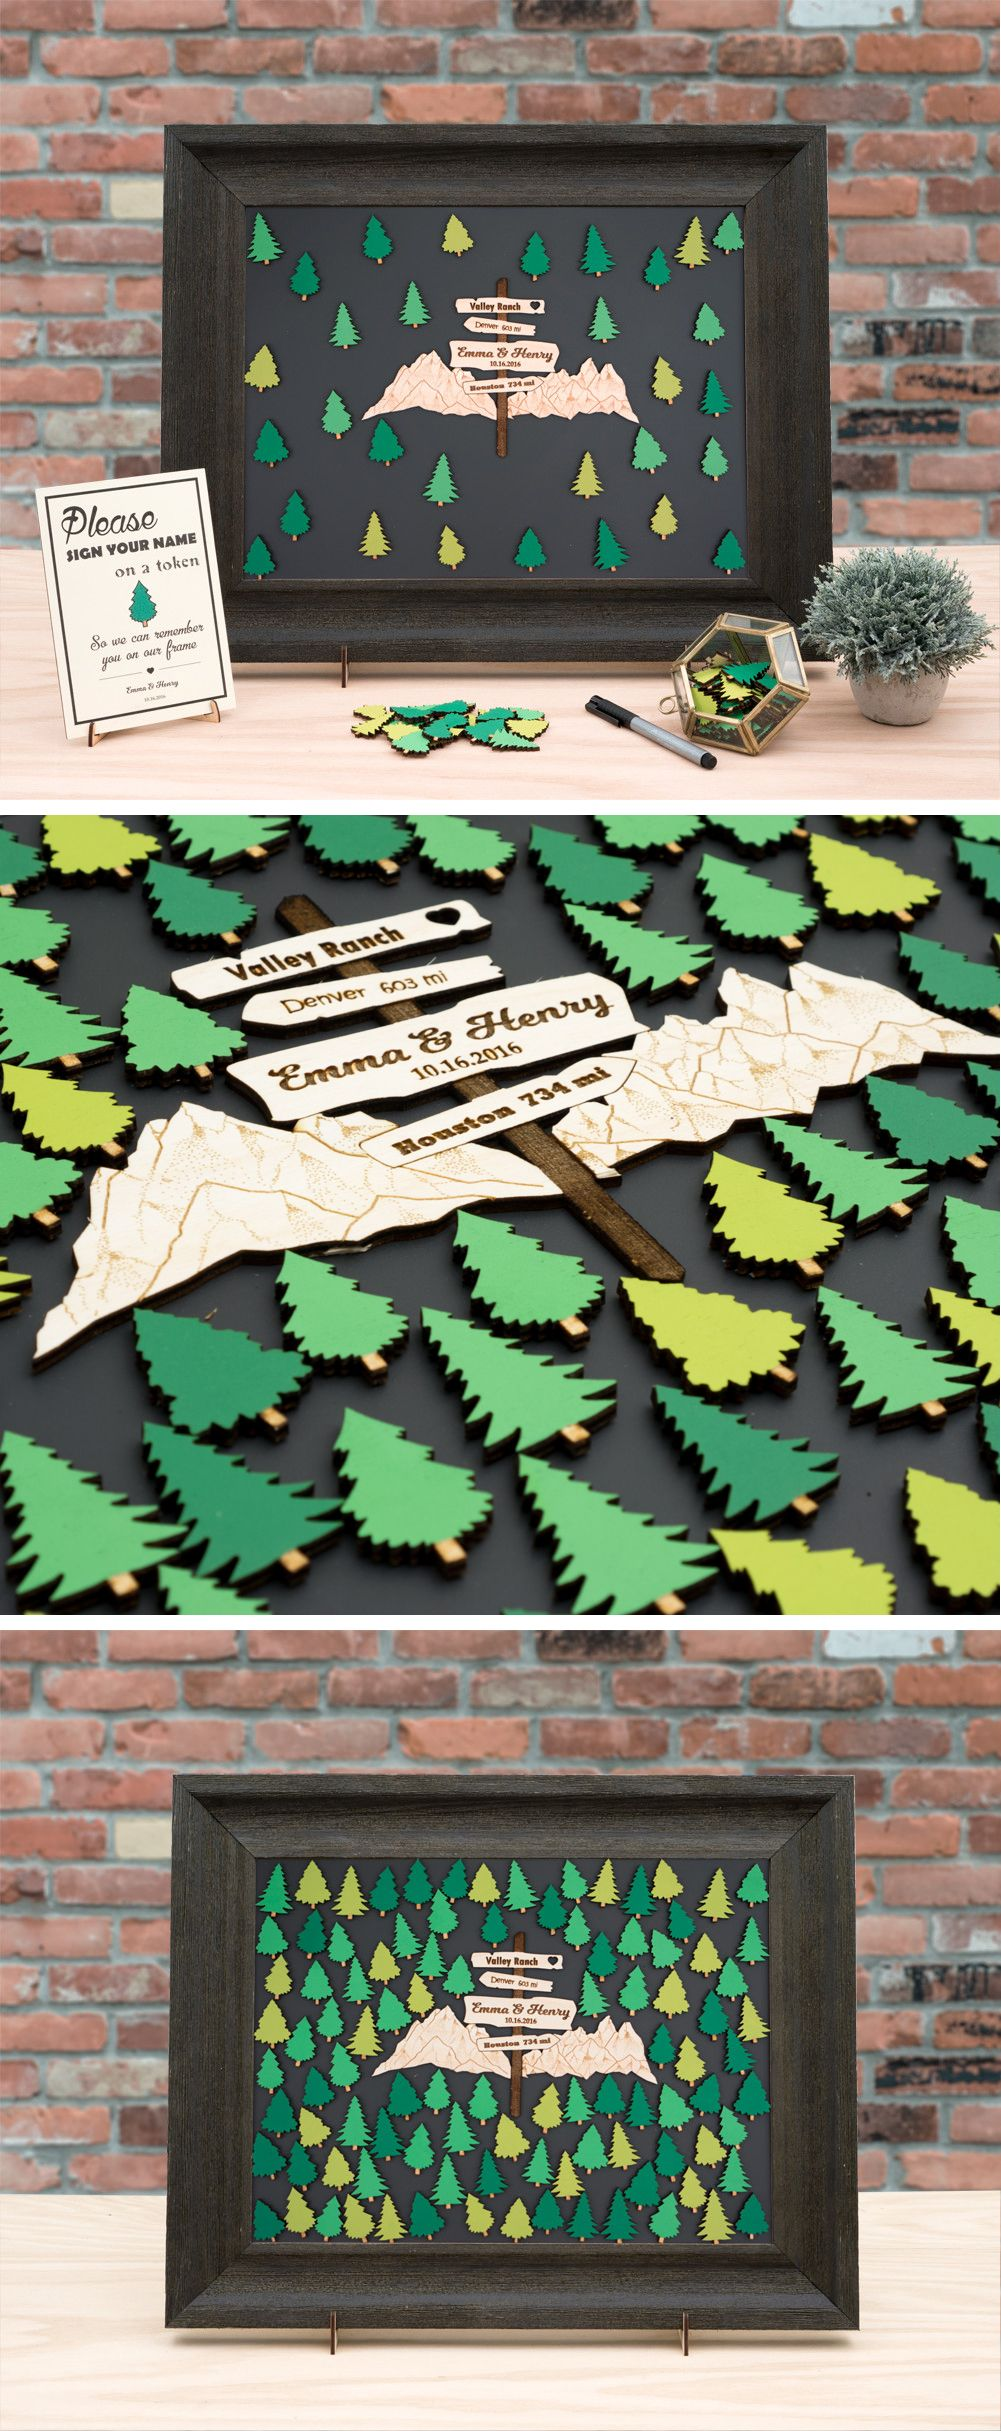 Wedding Guest Book Alternative - Nature, Forest, Hiking, Mountain Theme / Personal Customizable Unique Sign In by TokenGram #weddingguestdress